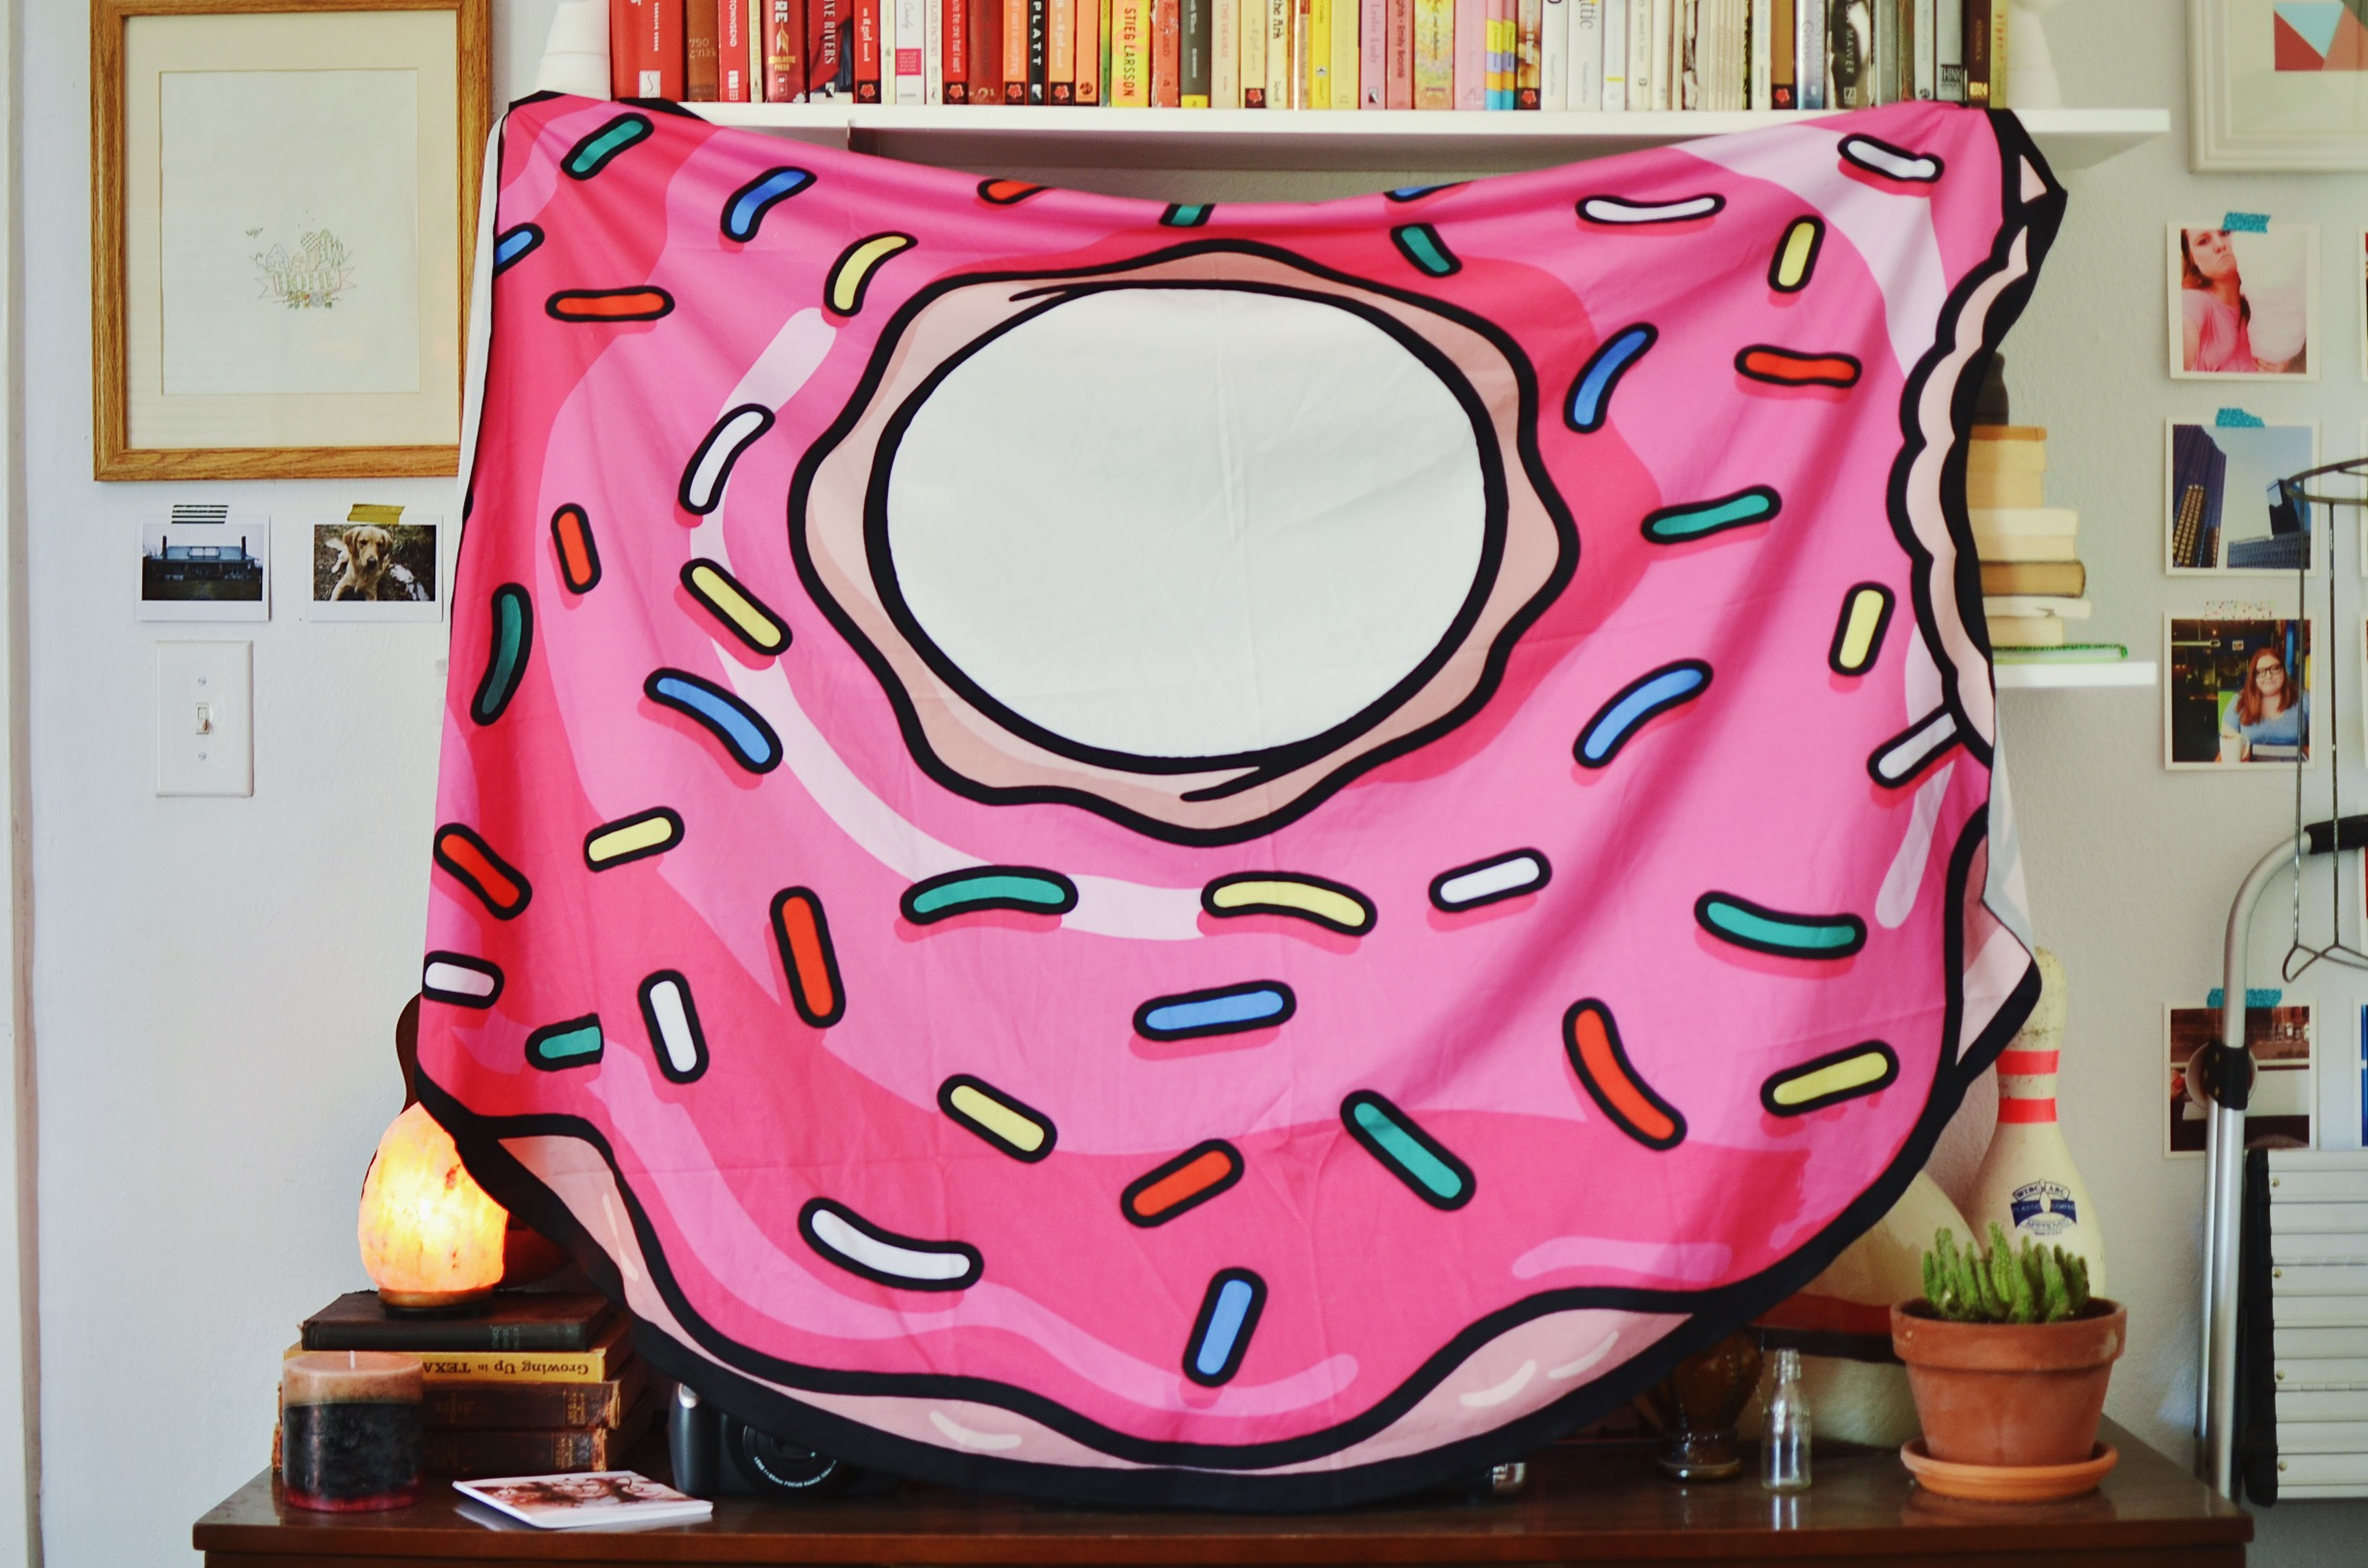 Sheinside donut beach blanket